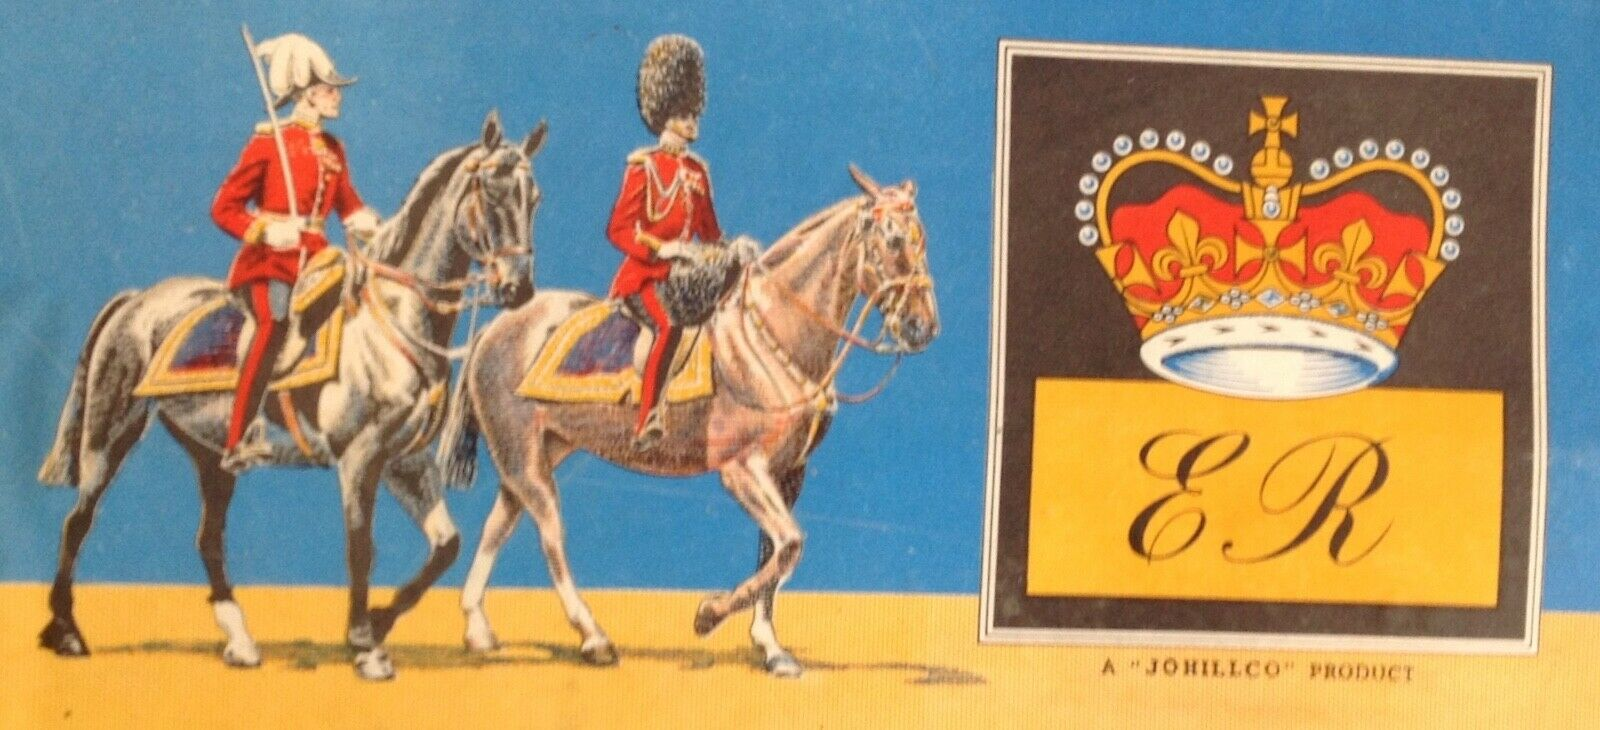 The Cgoldnation Procession 1953   by John Hill & co More than 50 Figures,Superb